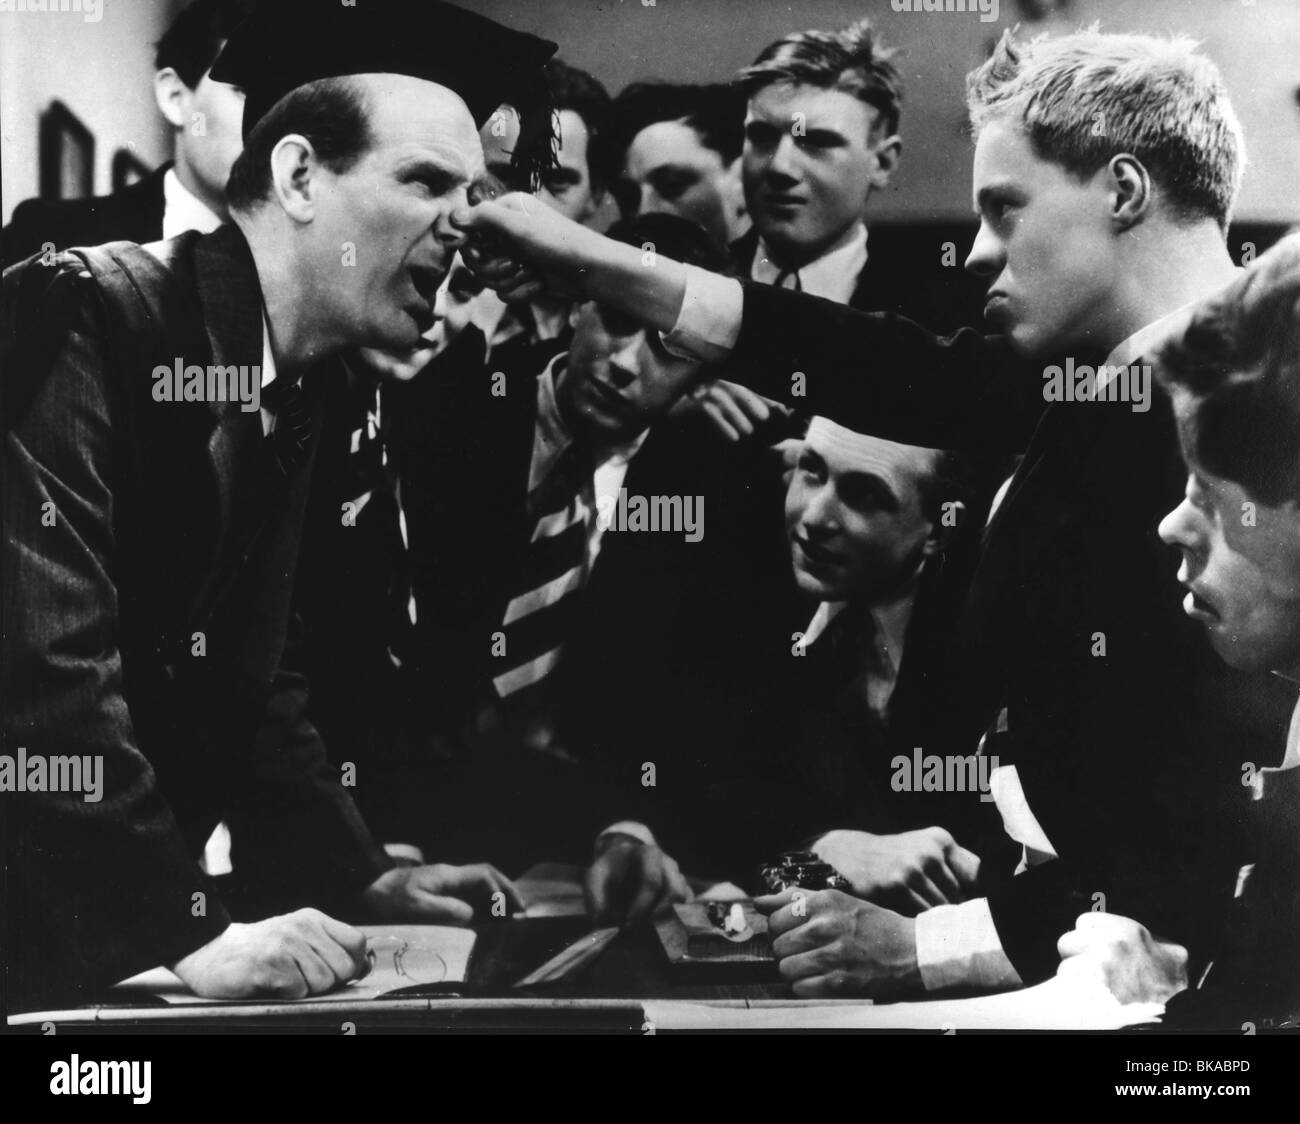 BOYS WILL BE BOYS (1935) WILL HAY BWB 002P - Stock Image